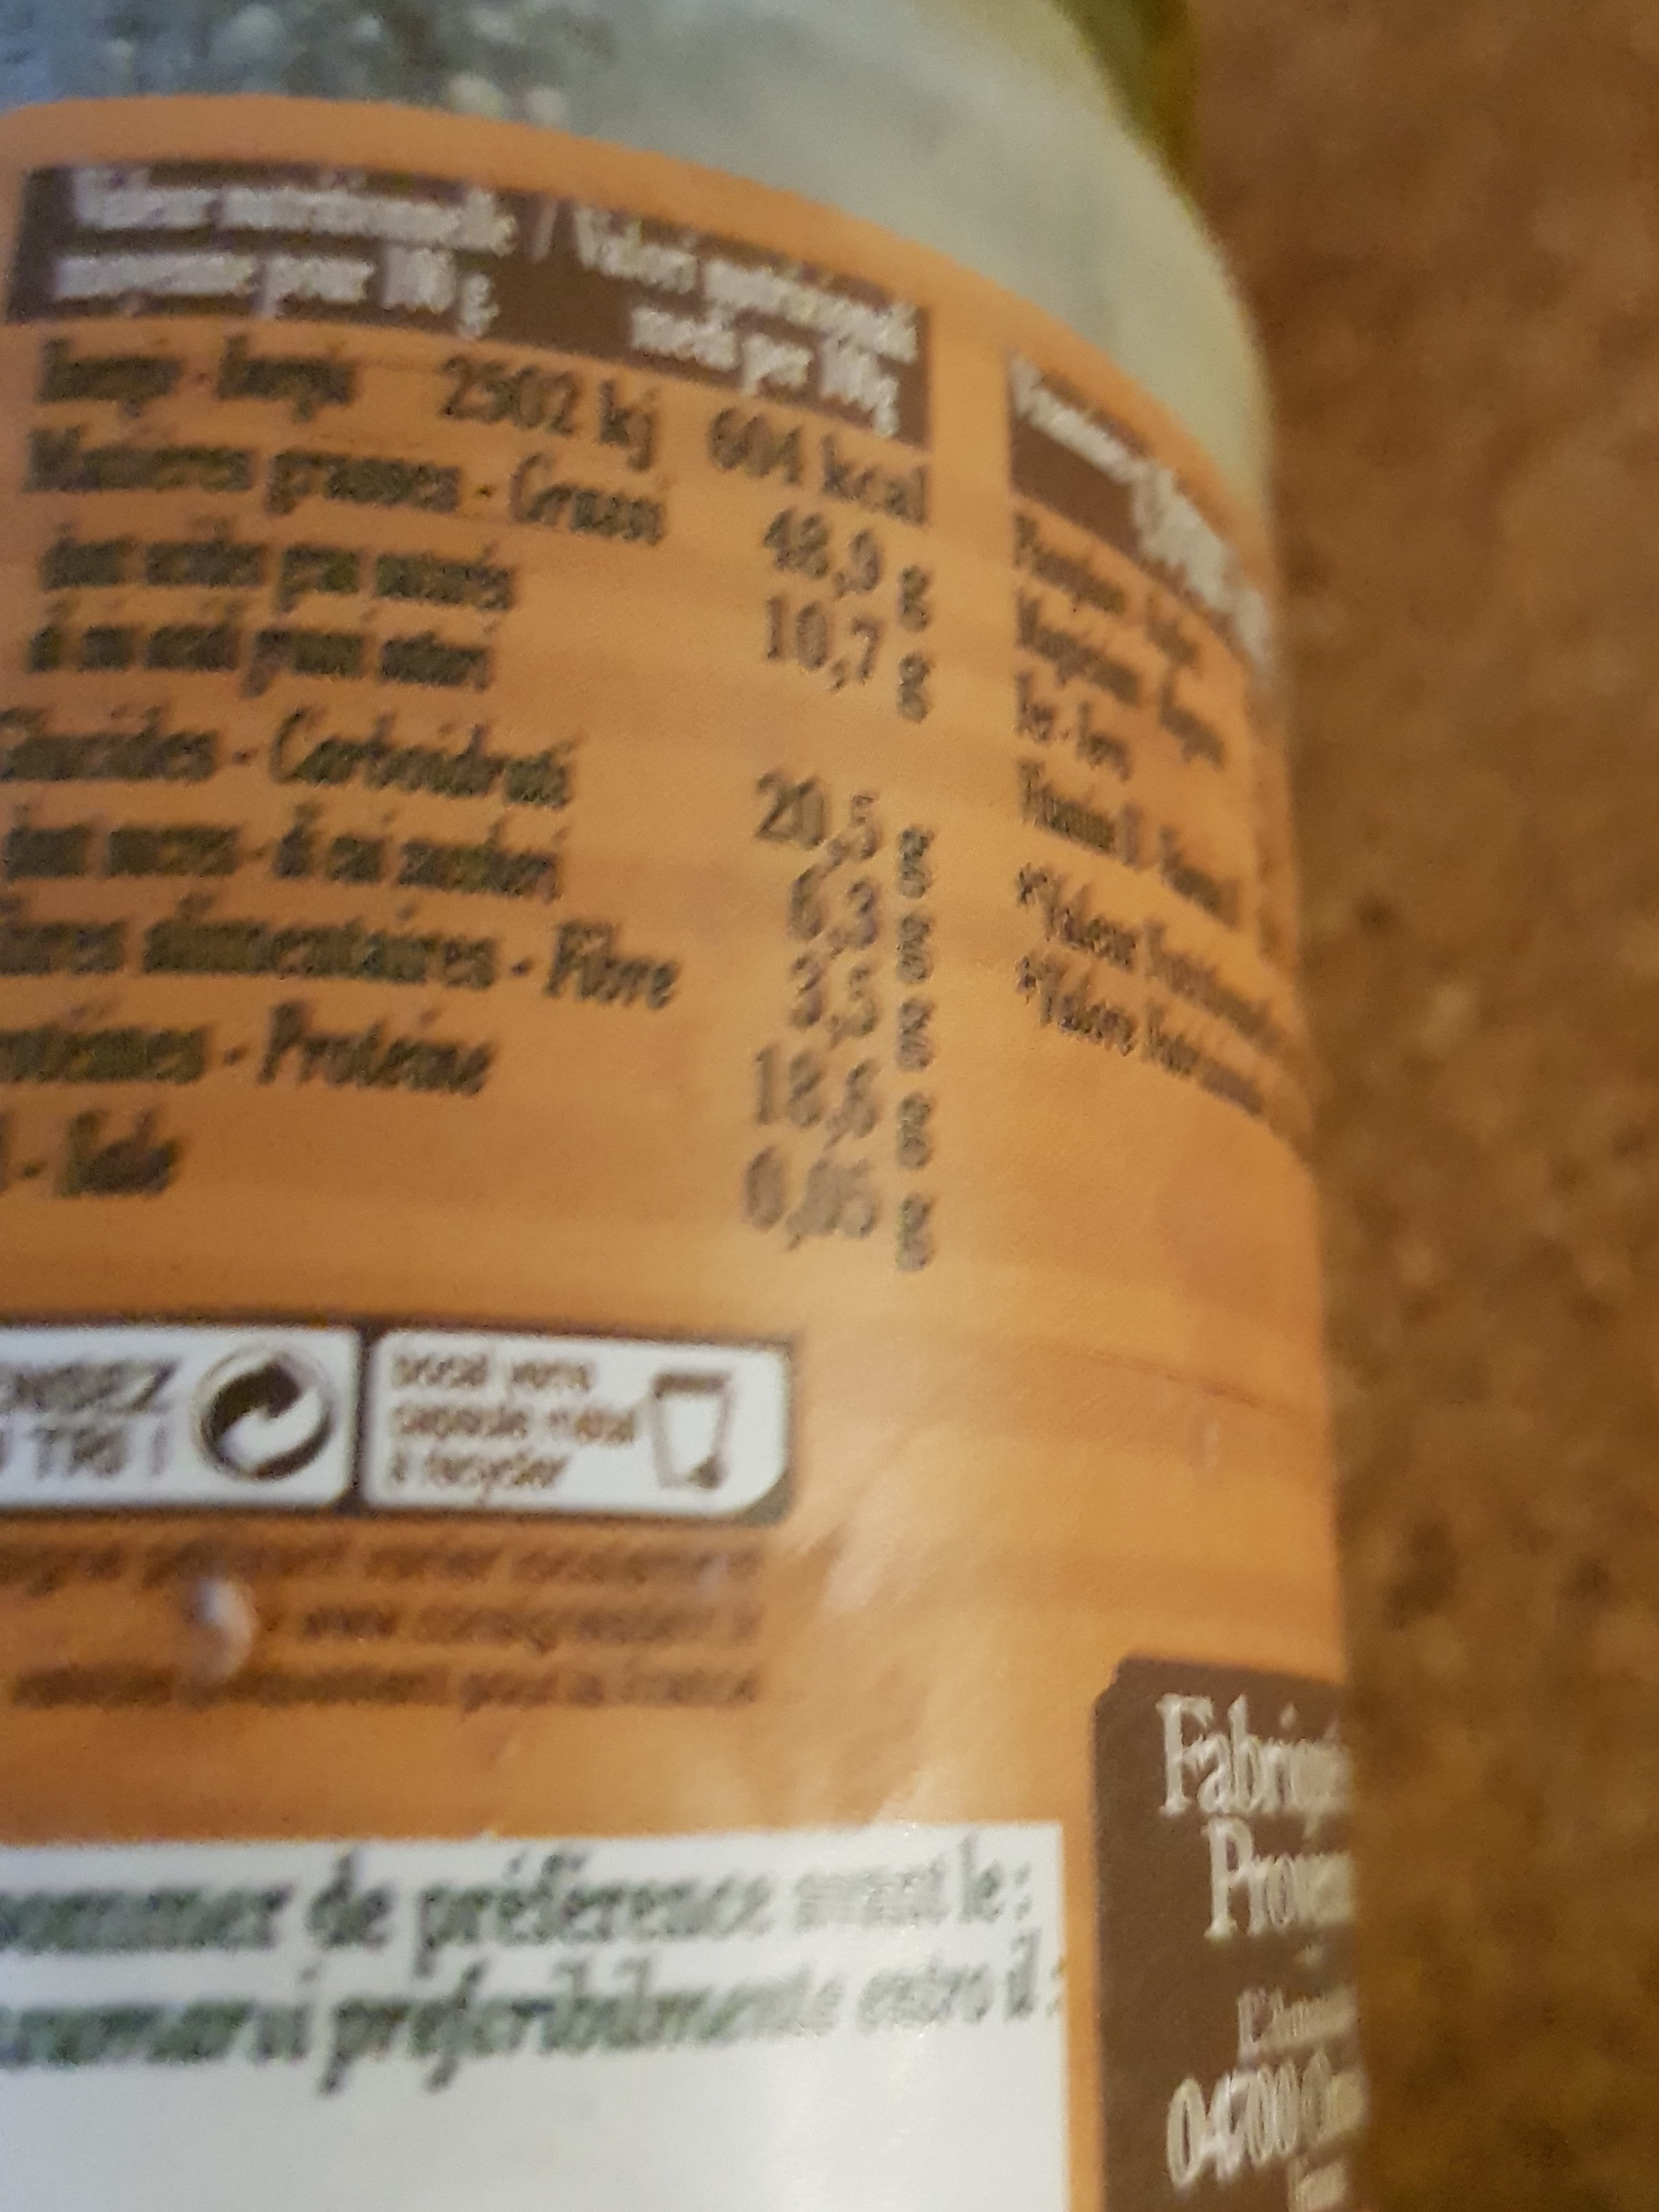 Puree noix cajou - Nutrition facts - fr